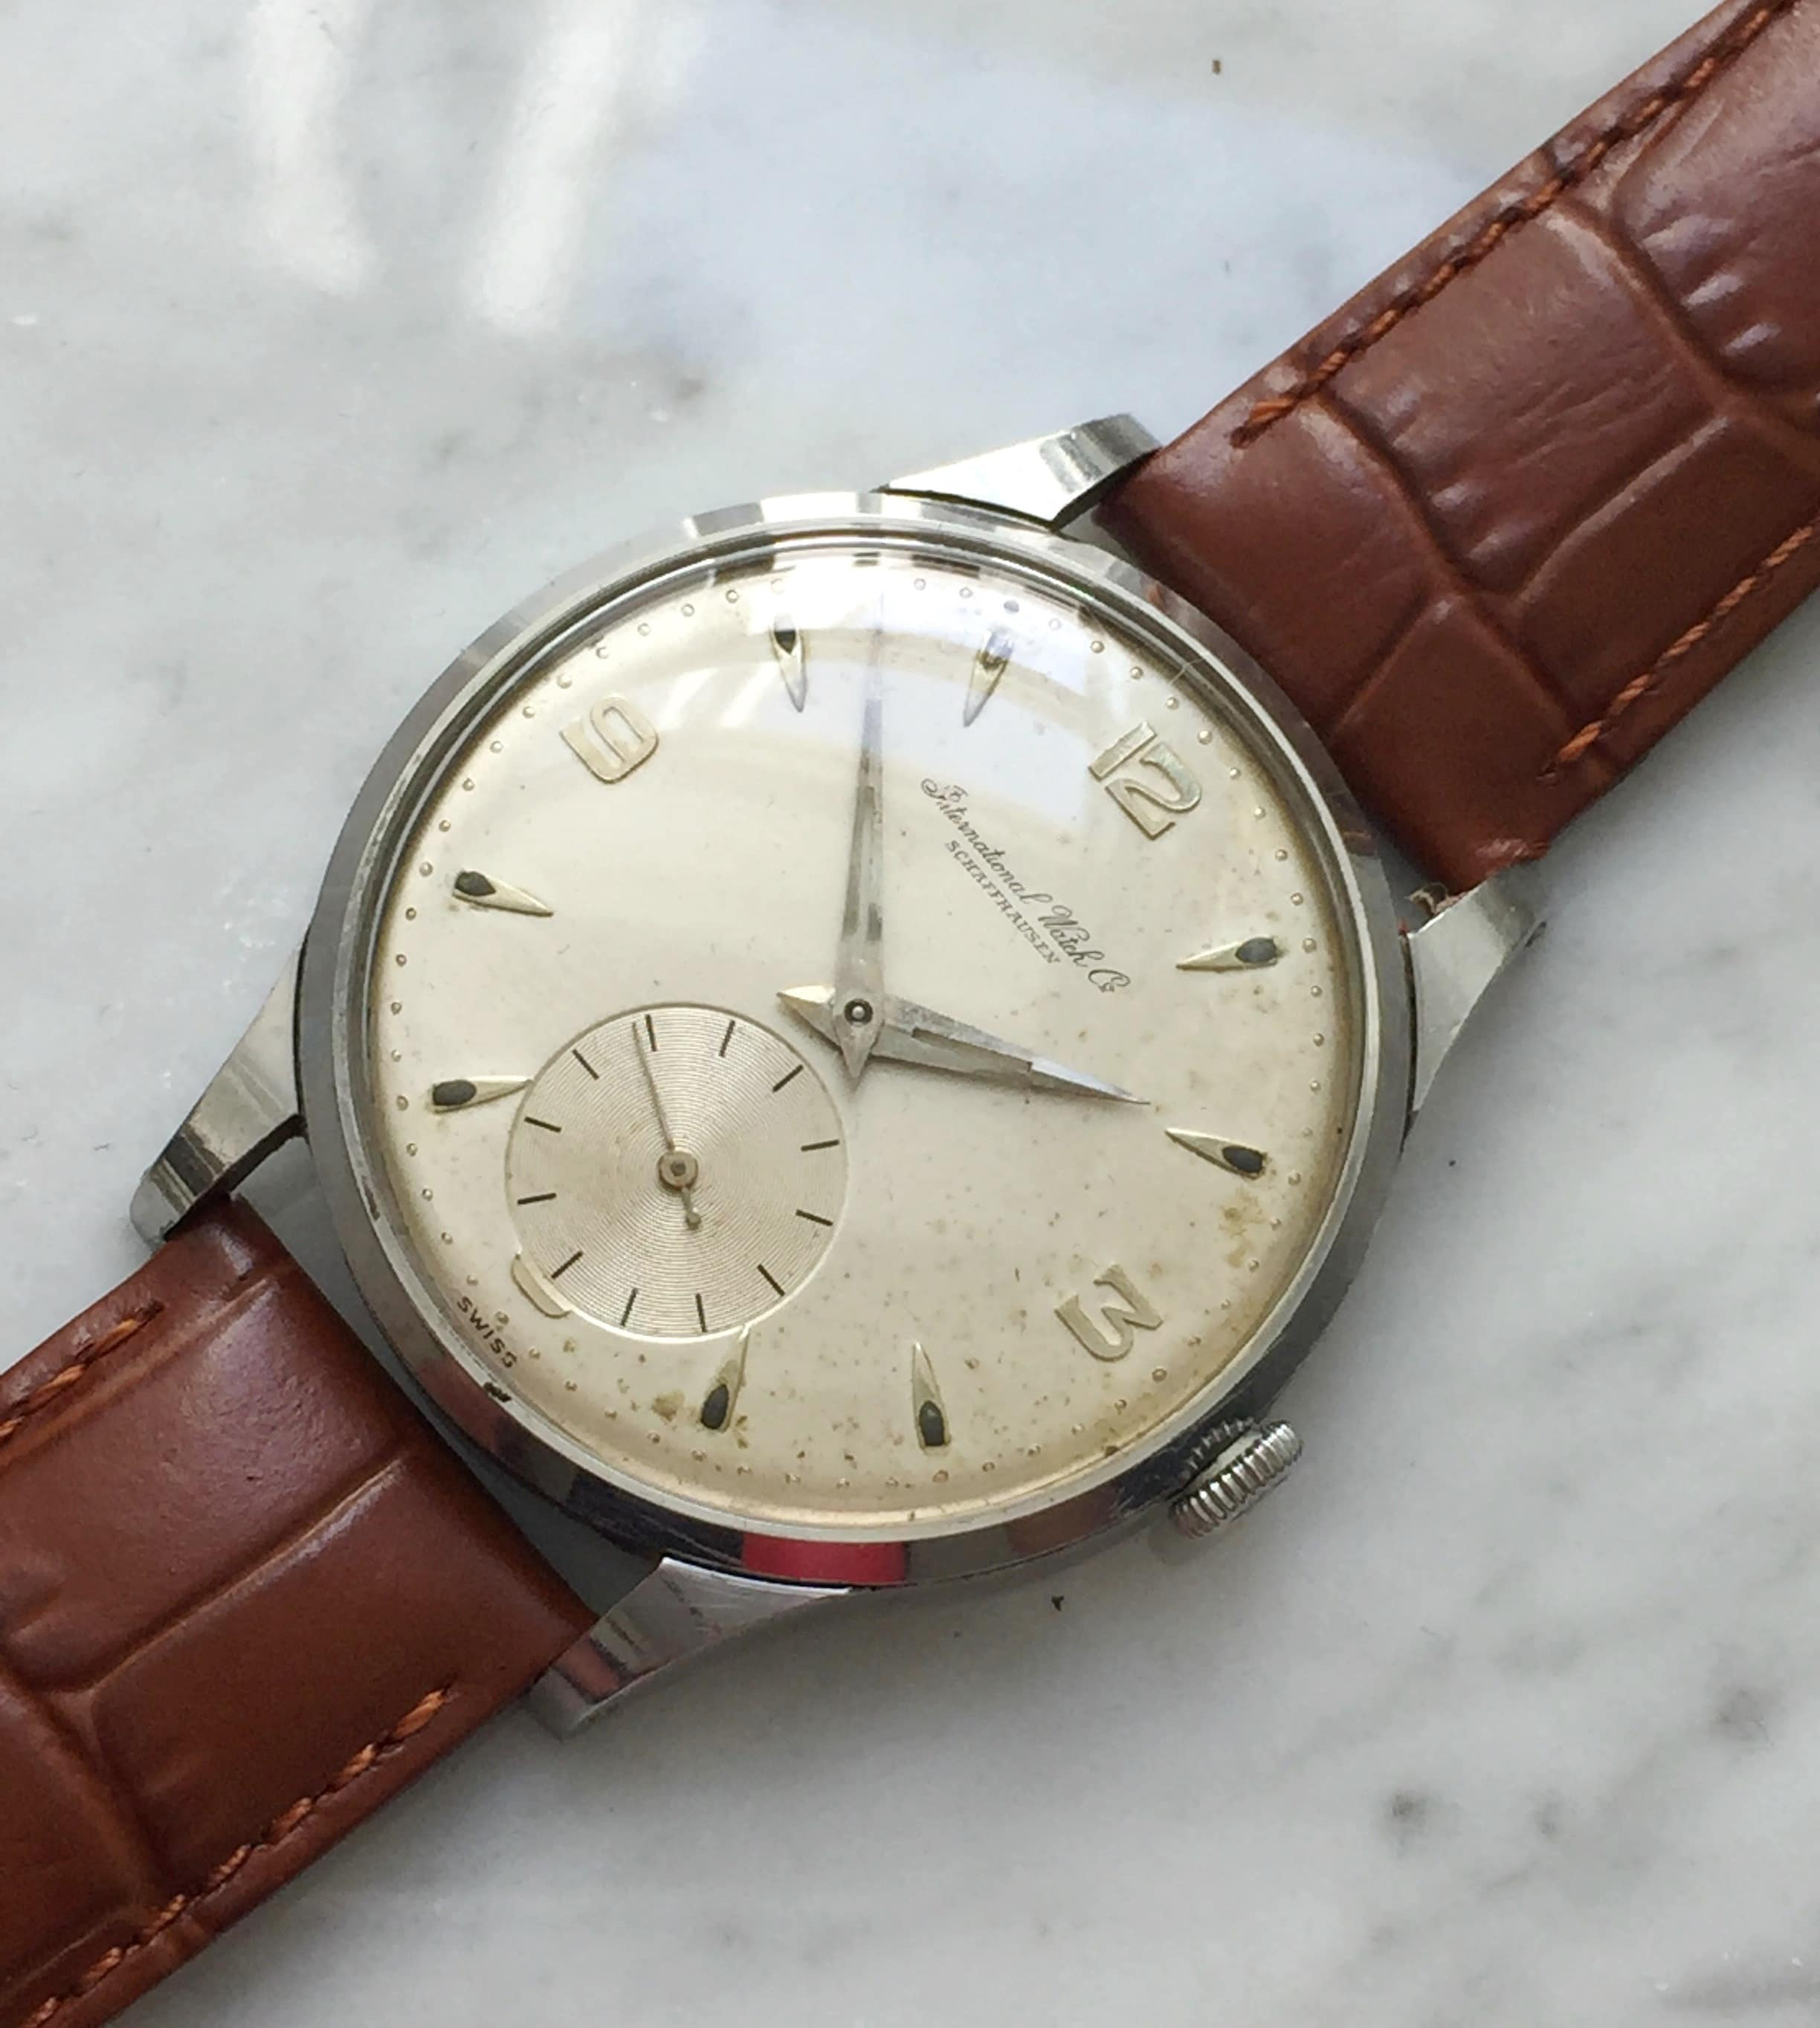 Refurbished Vintage IWC Small Seconds Caliber 88